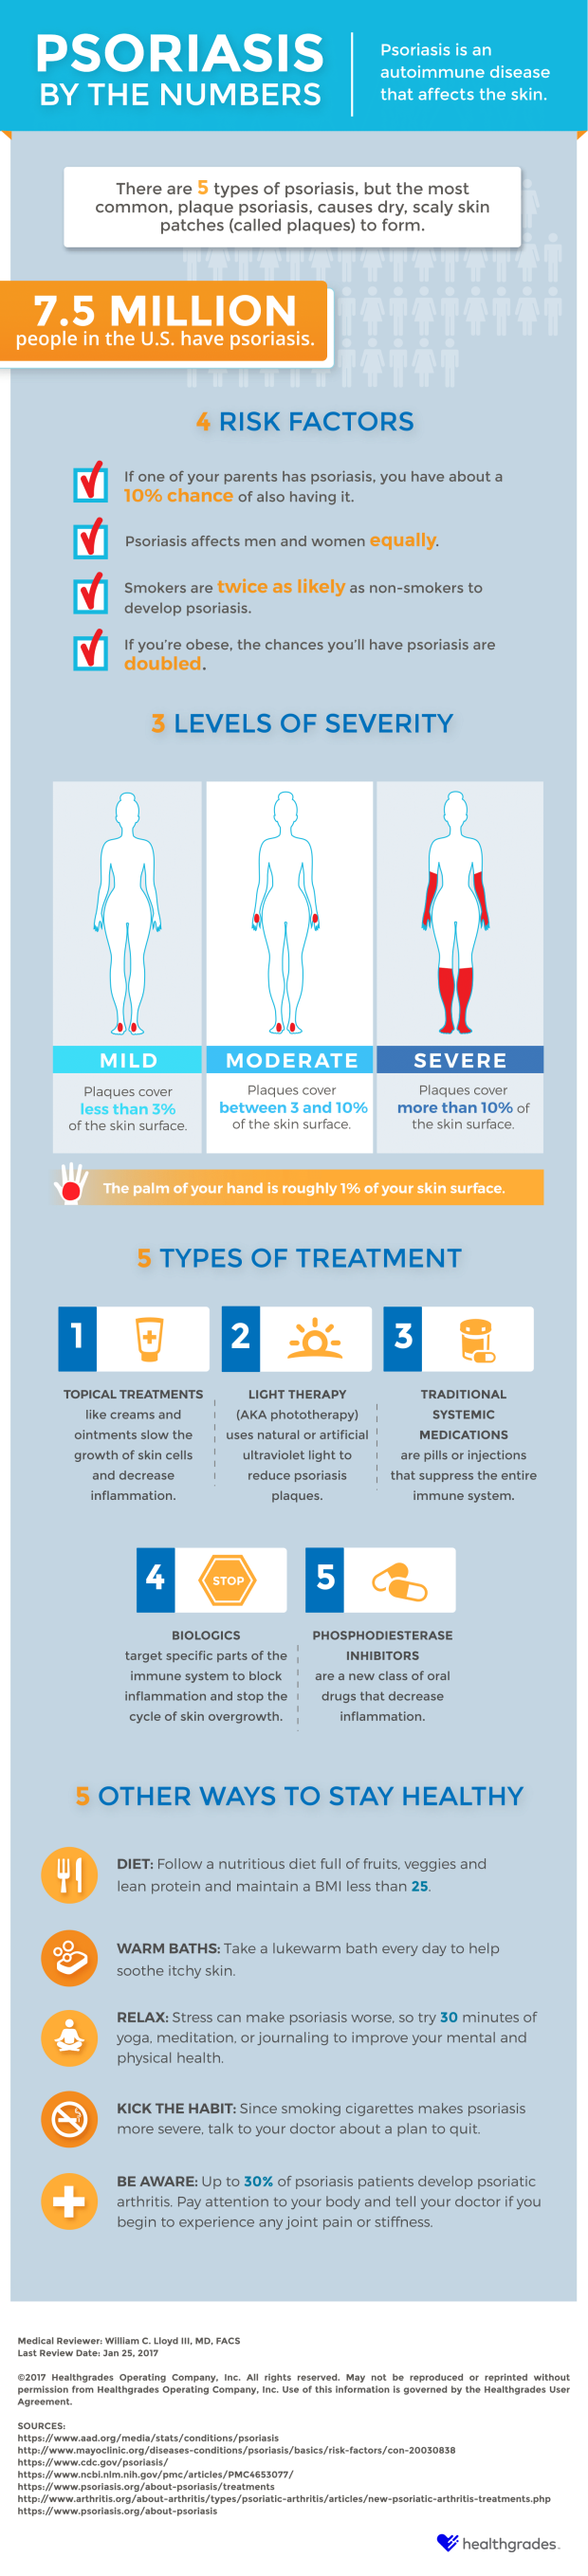 Psoriasis By the Numbers